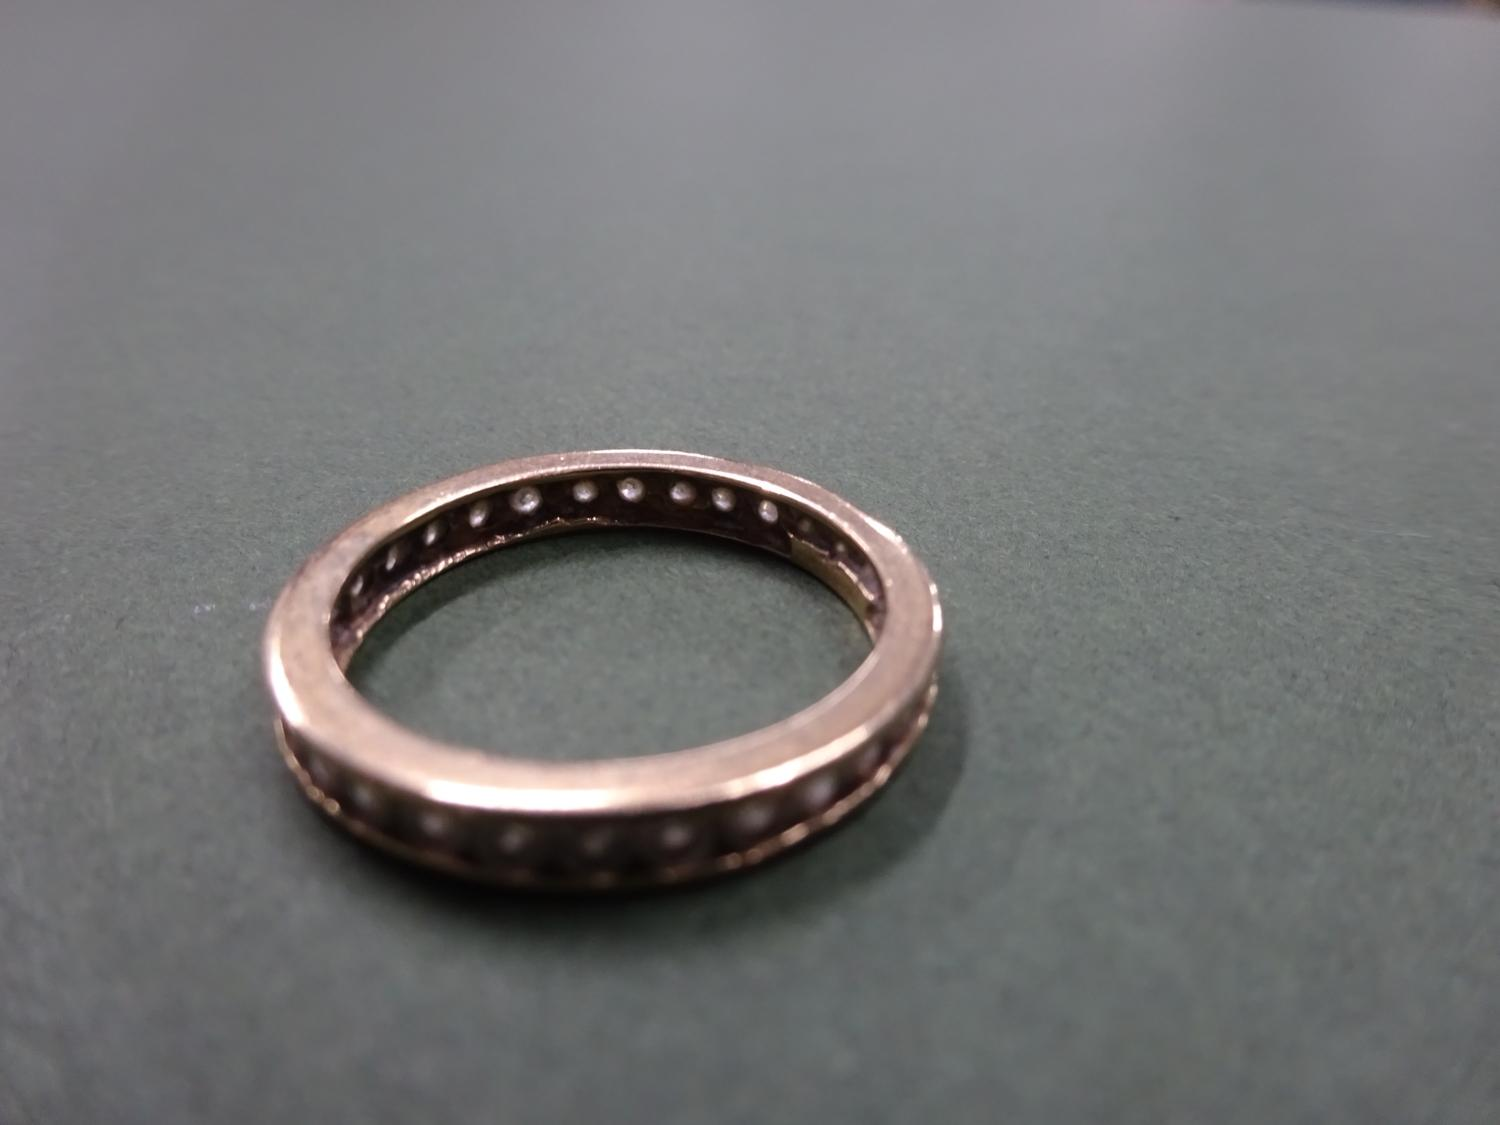 Lot 4 - 9ct gold full eternity band with white stones set within two bands, total weight 2.4g